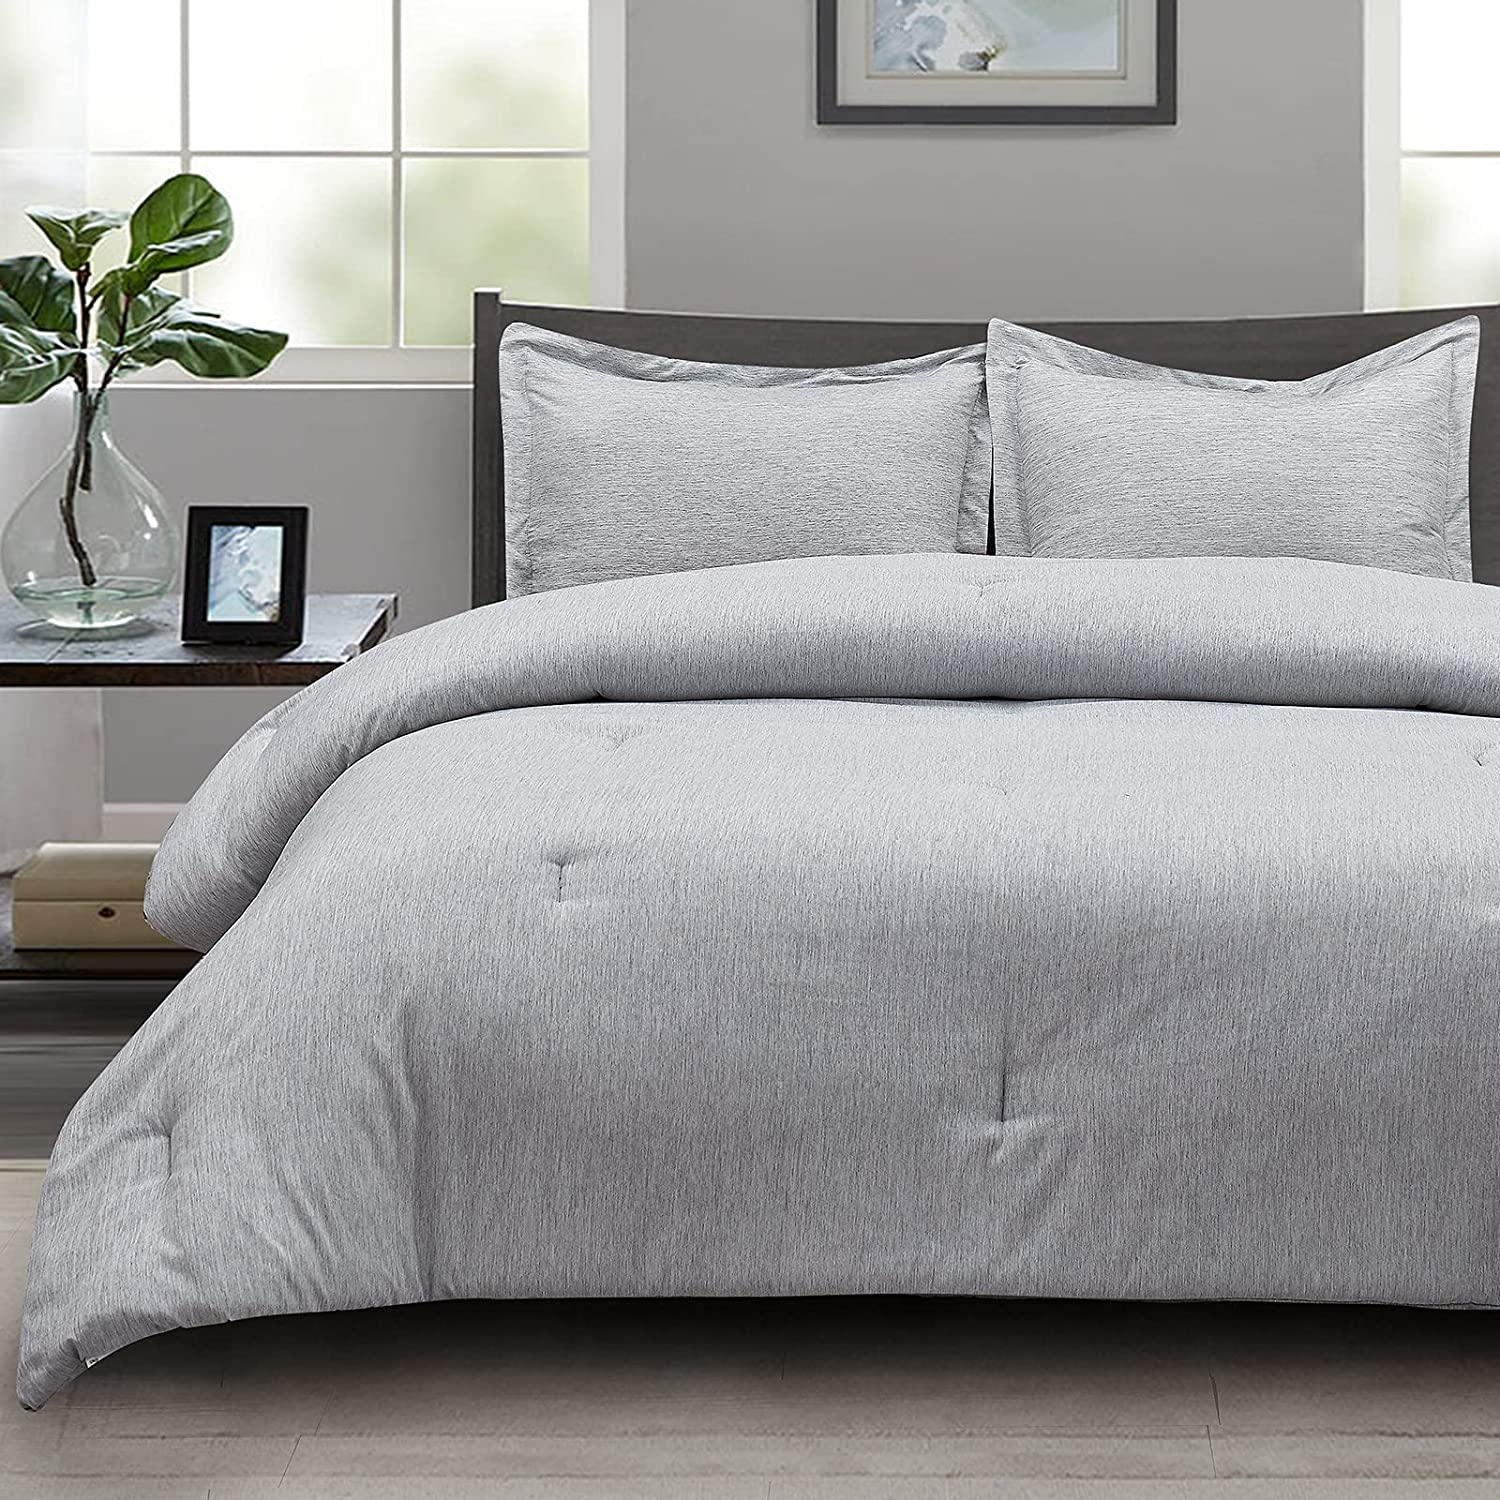 CozyLux Twin Comforter Set Max 76% OFF Grey 2-Piece Bed Dyeing Cationic Soft Boston Mall